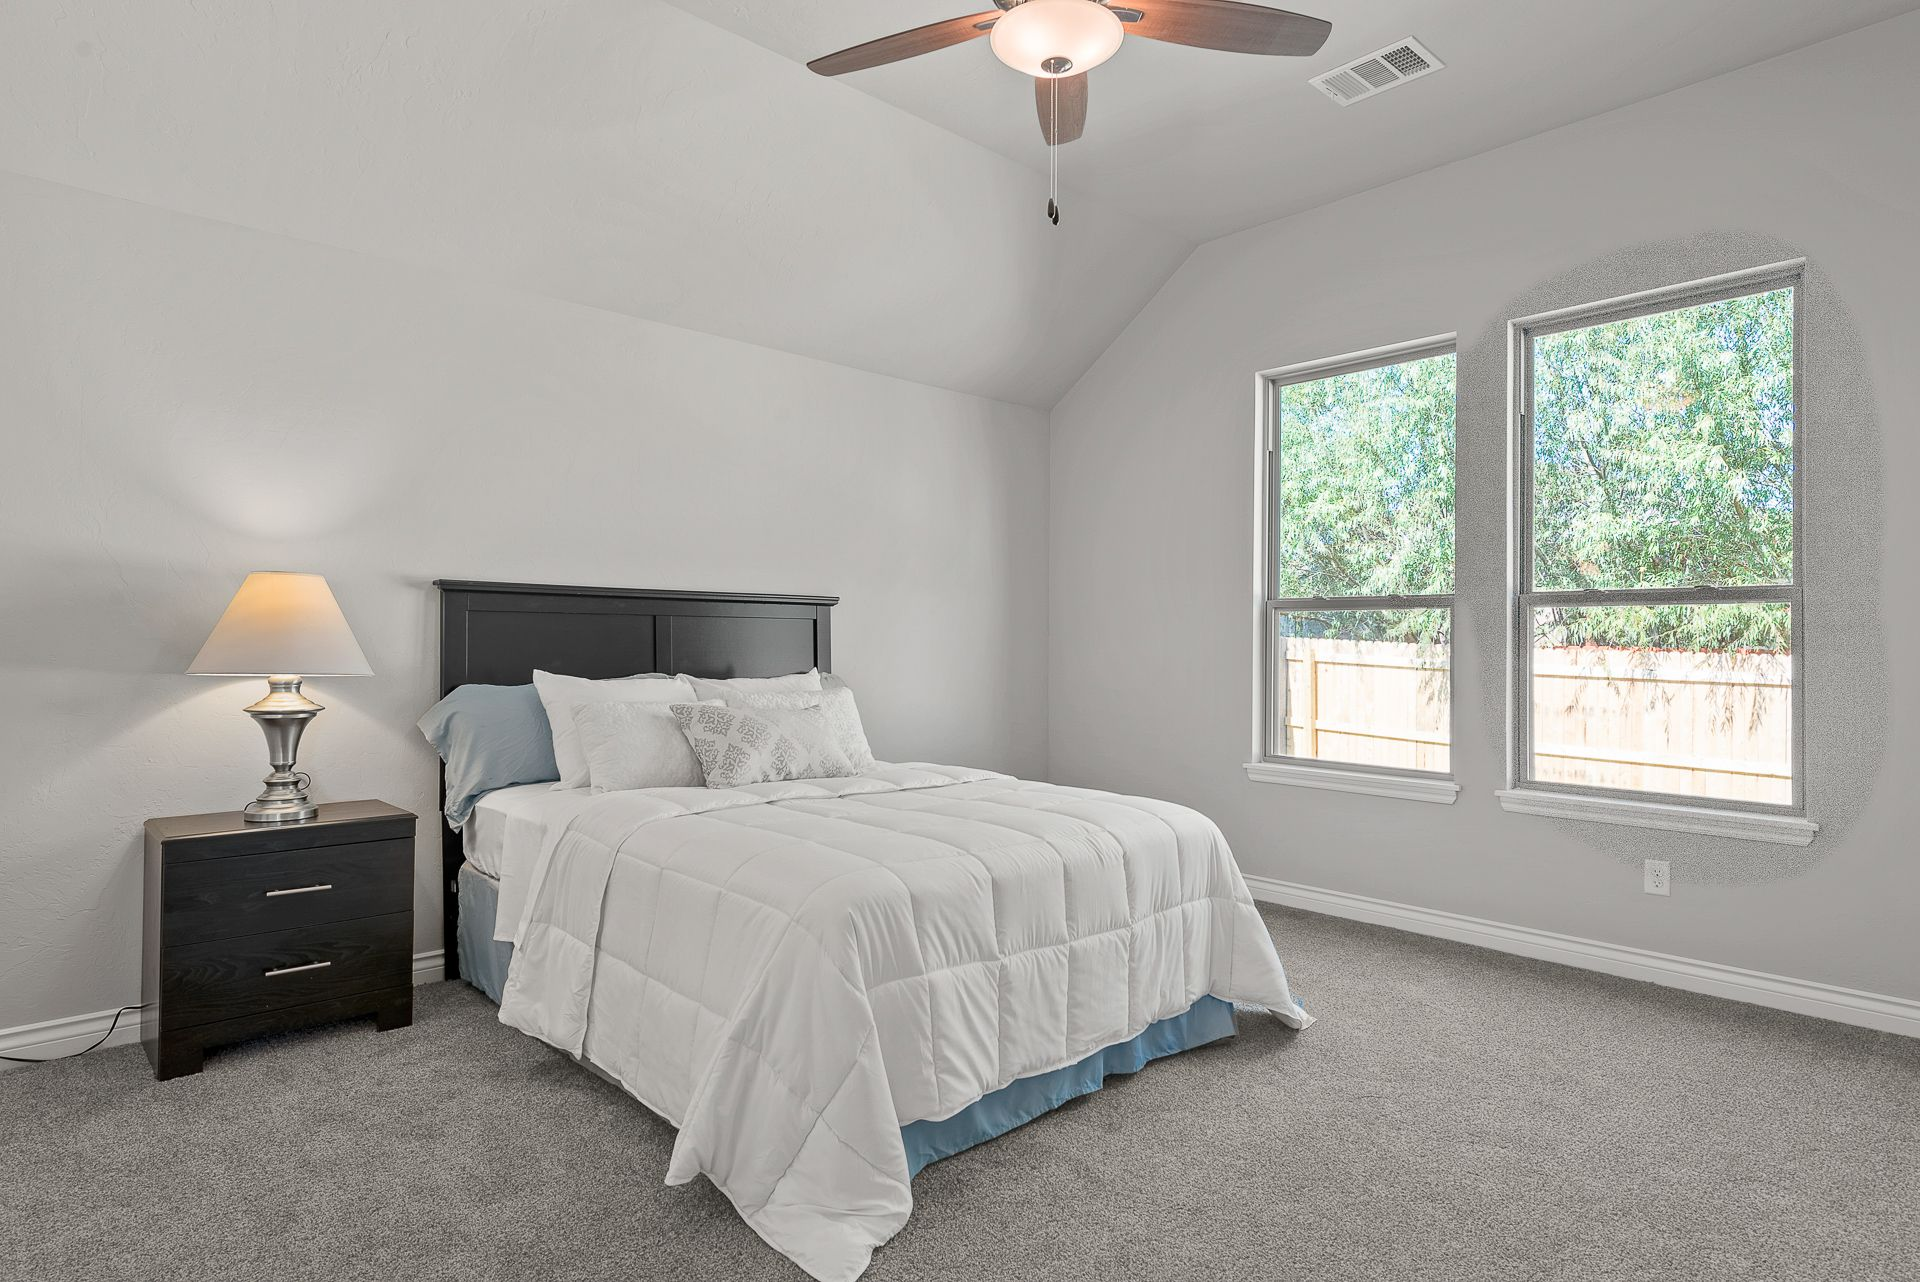 Bedroom featured in the Marietta By Ideal Homes in Oklahoma City, OK